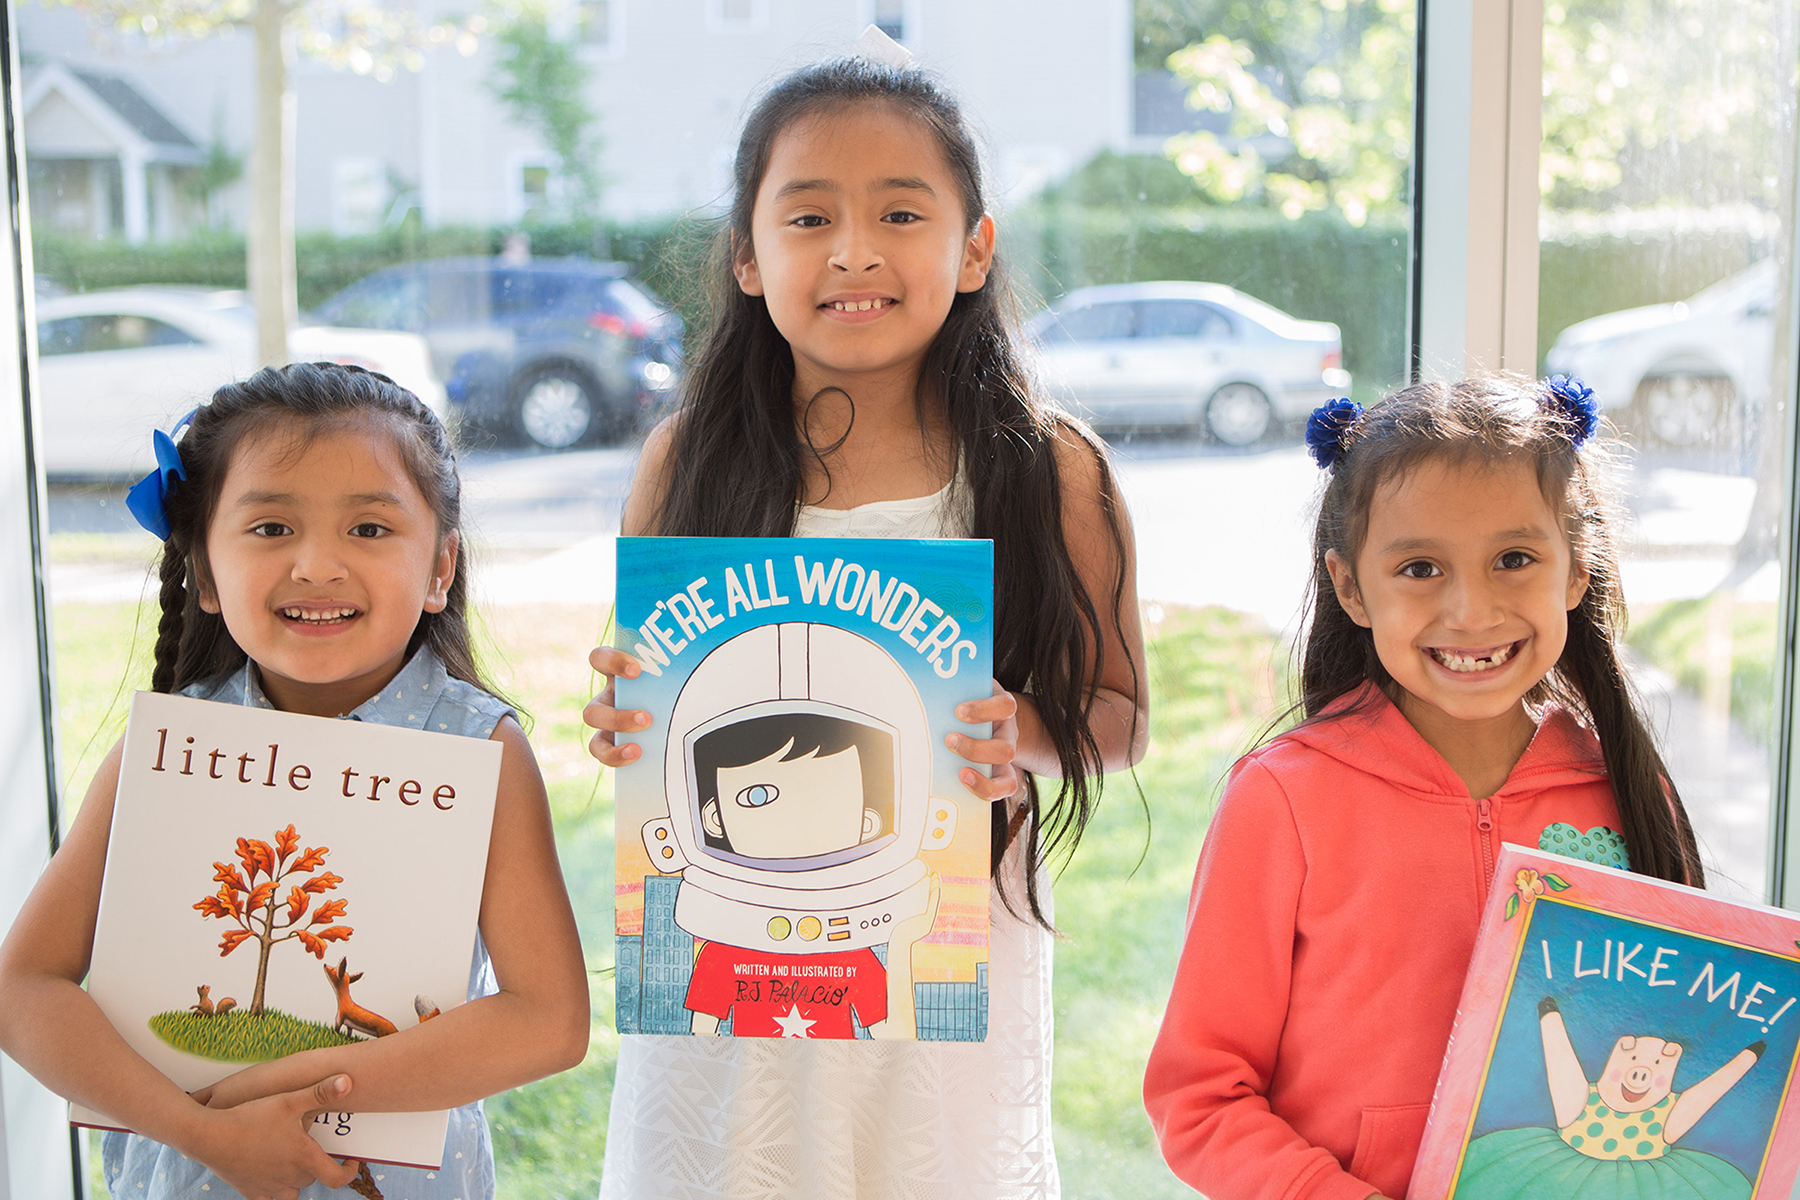 NHR students happily display books they received in a giveaway.